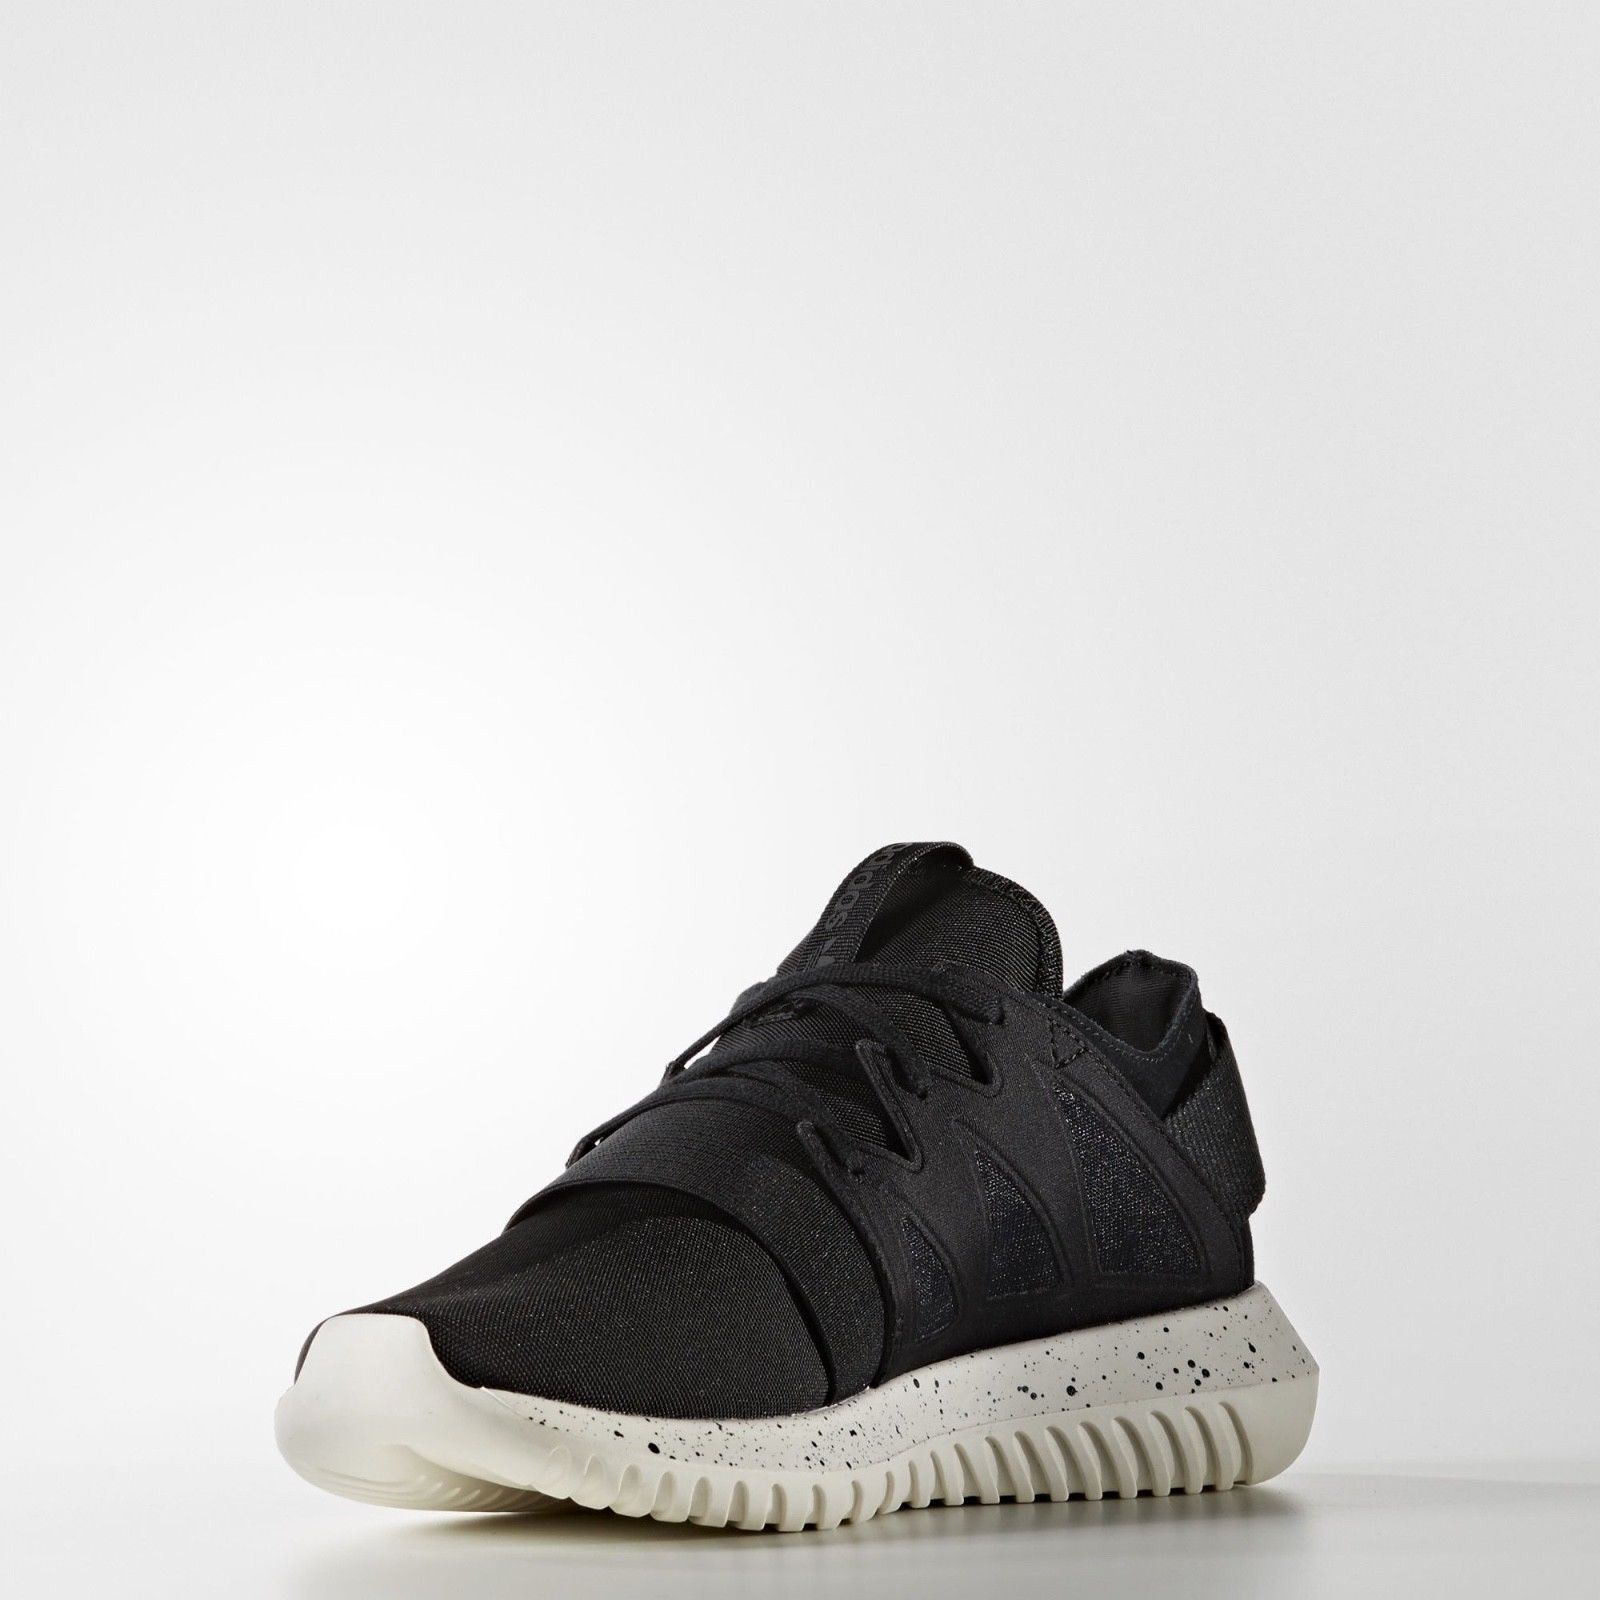 ADIDAS ORIGINALS TUBULAR VIRAL W BLACK WHITE S75915 WOMAN'S SHOES 9.5 US